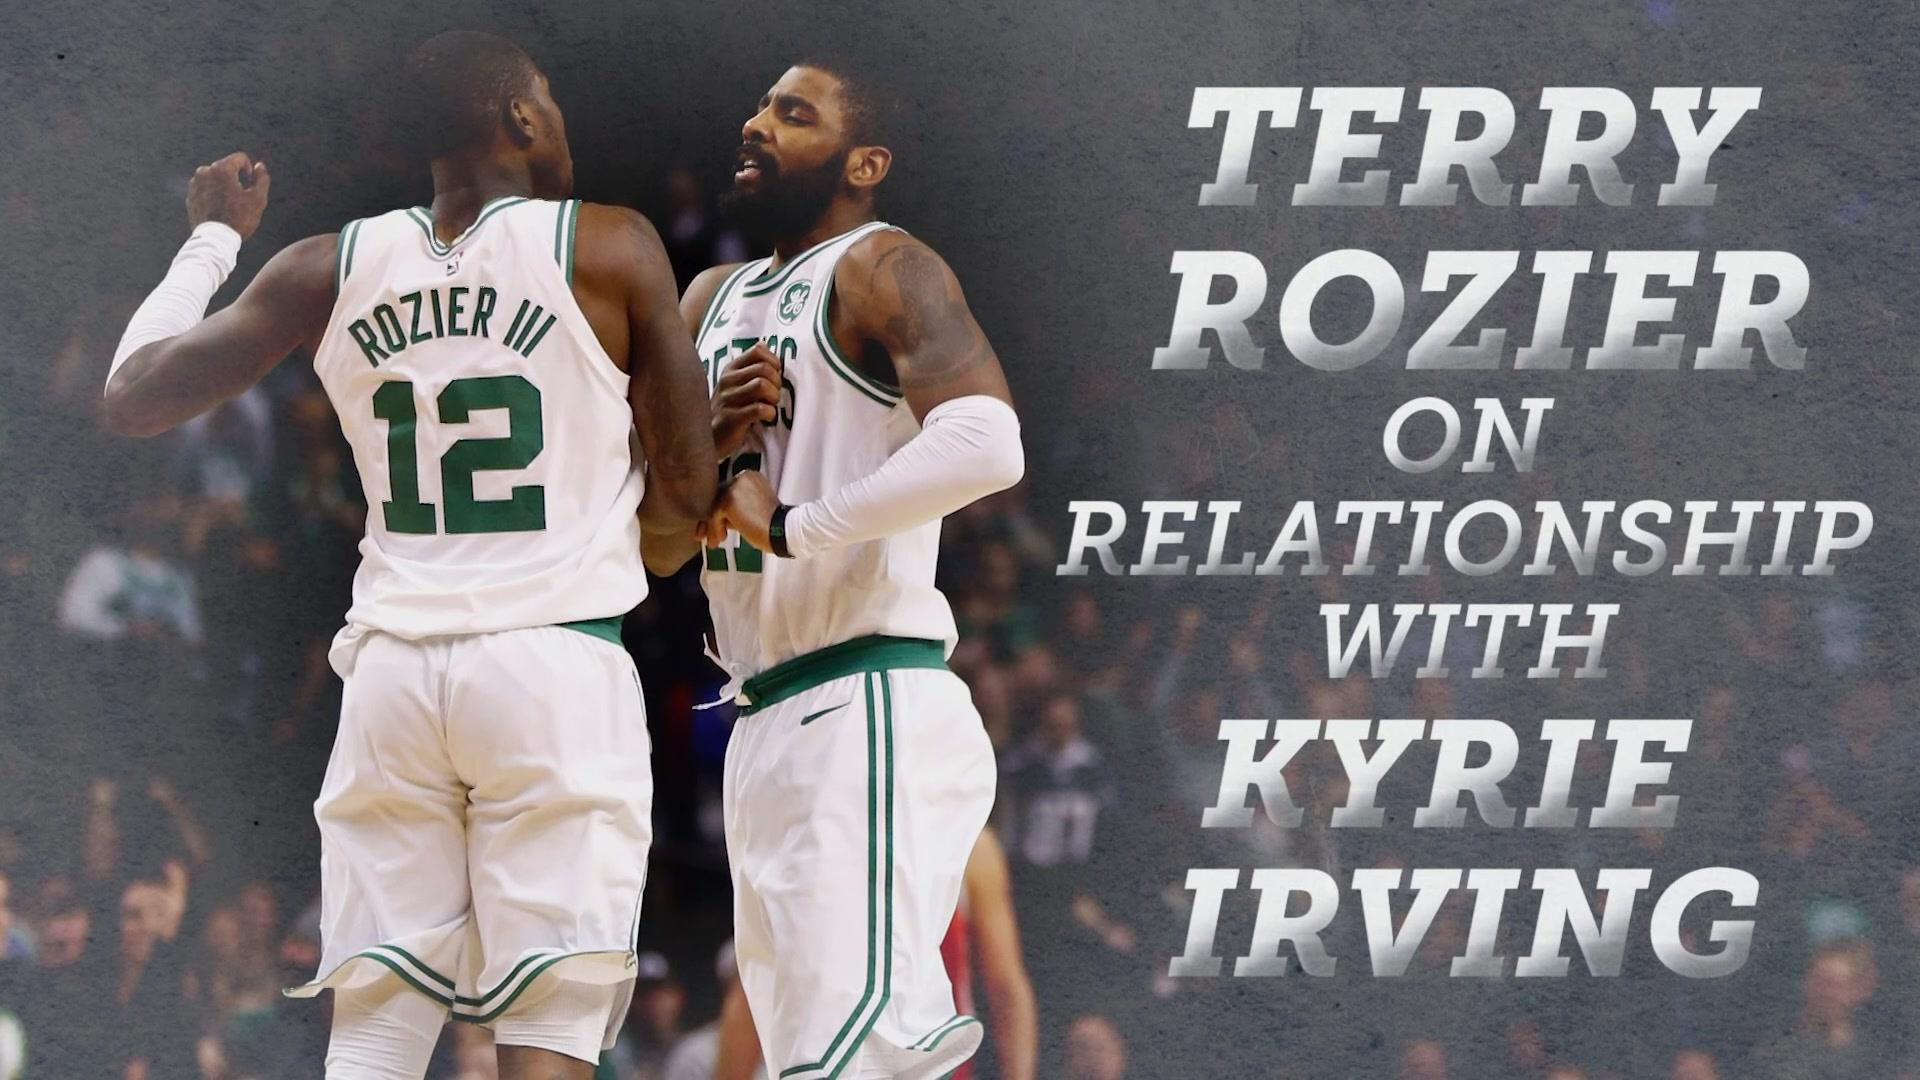 Terry Rozier opens up about relationship with Kyrie Irving